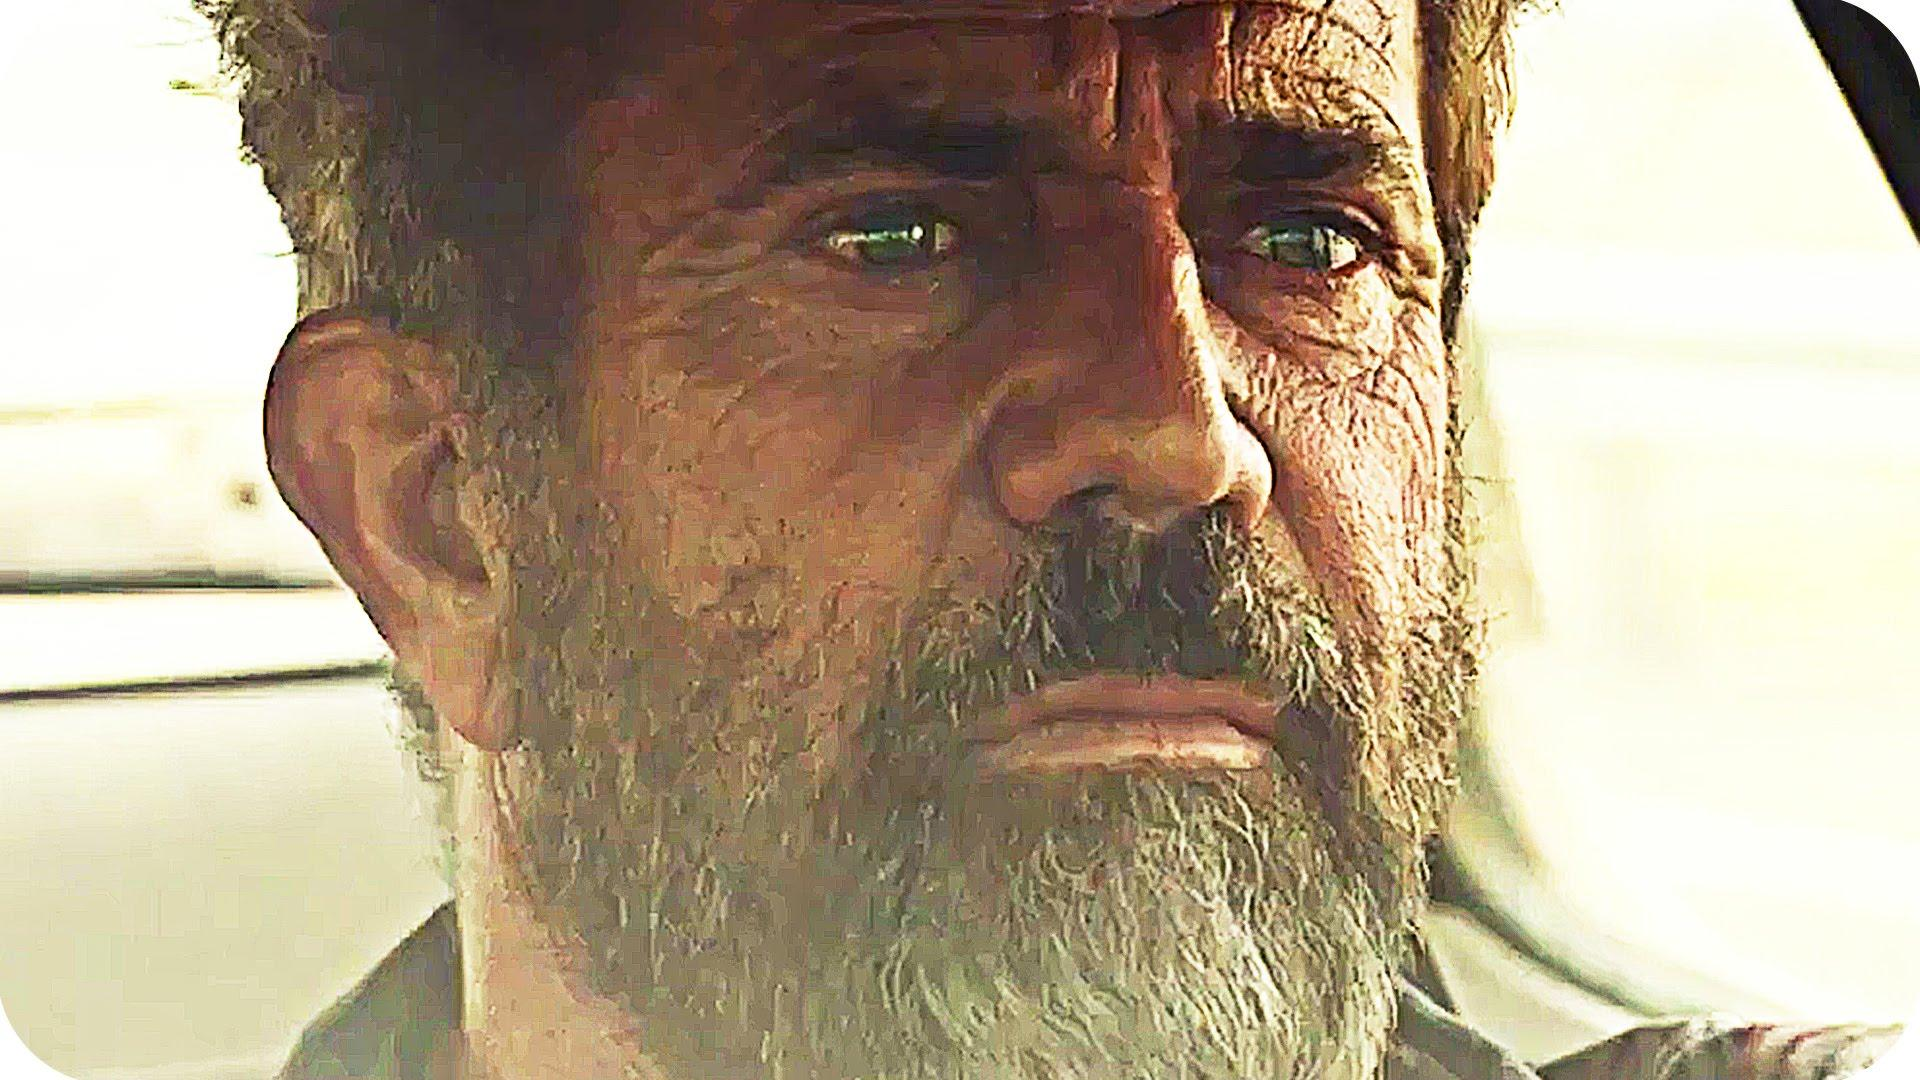 Blood Father de Jean-François Richet